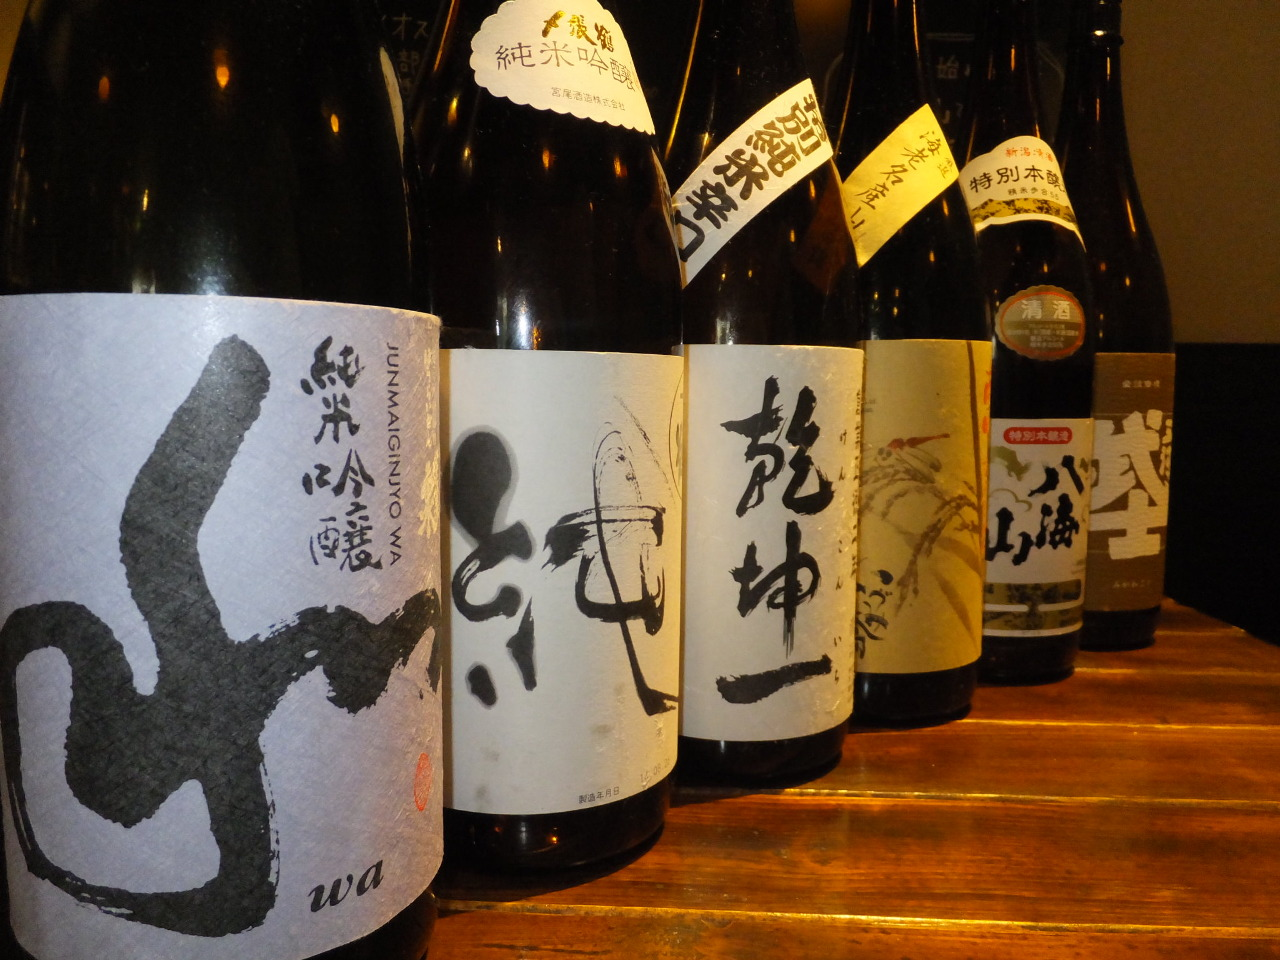 Japanese sake goes exceptionally well with miso dishes.